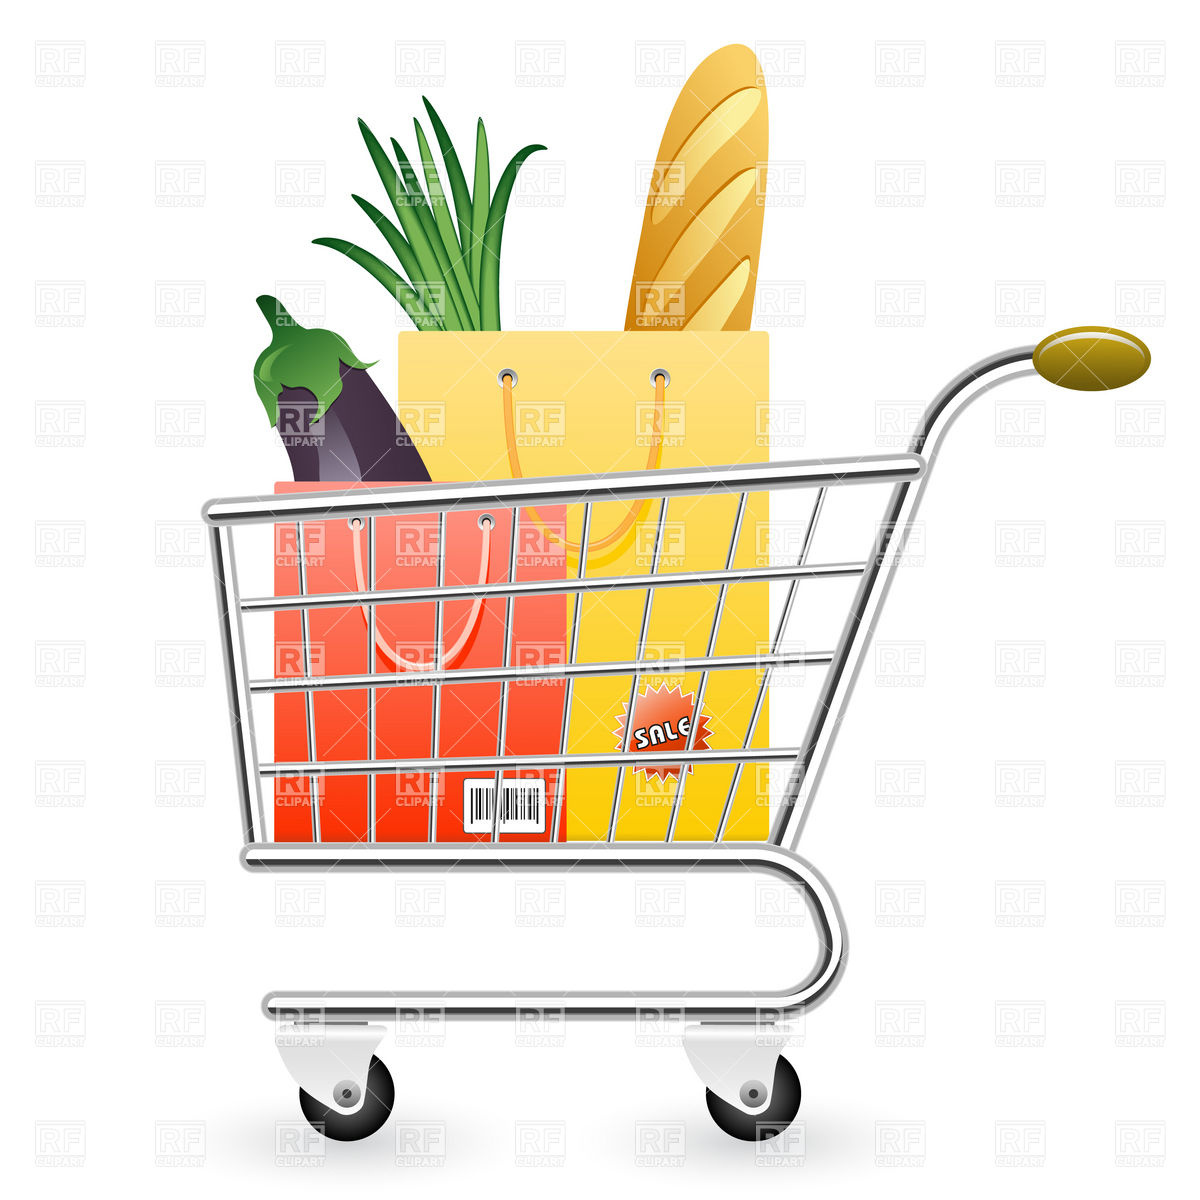 svg royalty free download Free download best . Supermarket clipart full grocery cart.